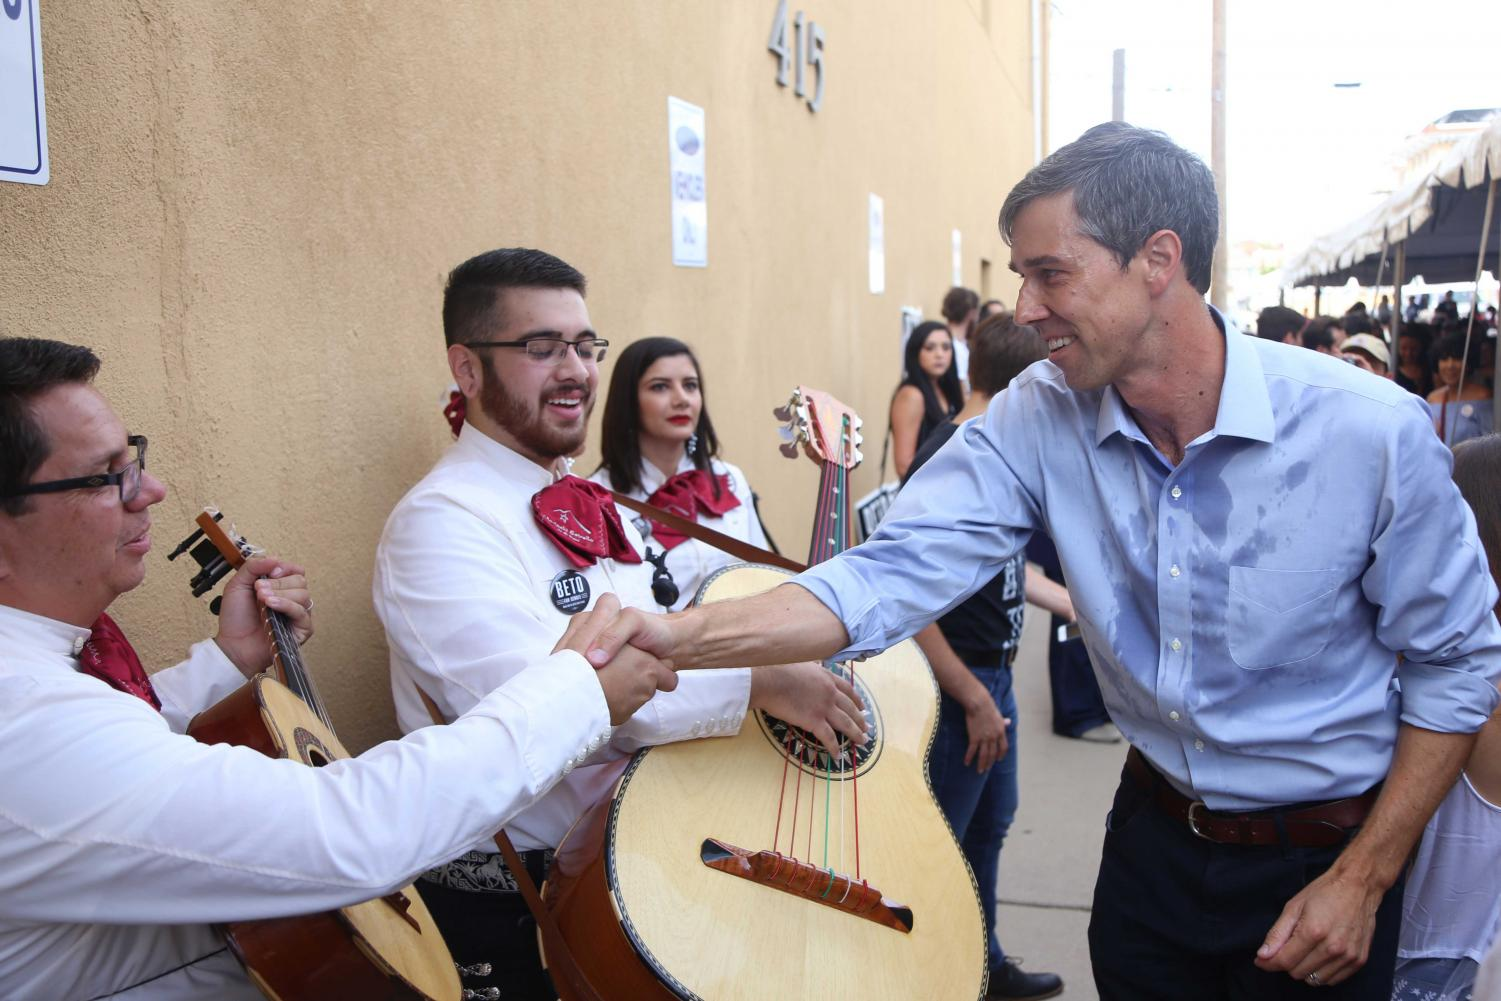 Congressmen+Beto+O%27Rourke+greets+members+of+Mariachi+Estrella+de+El+Paso.+